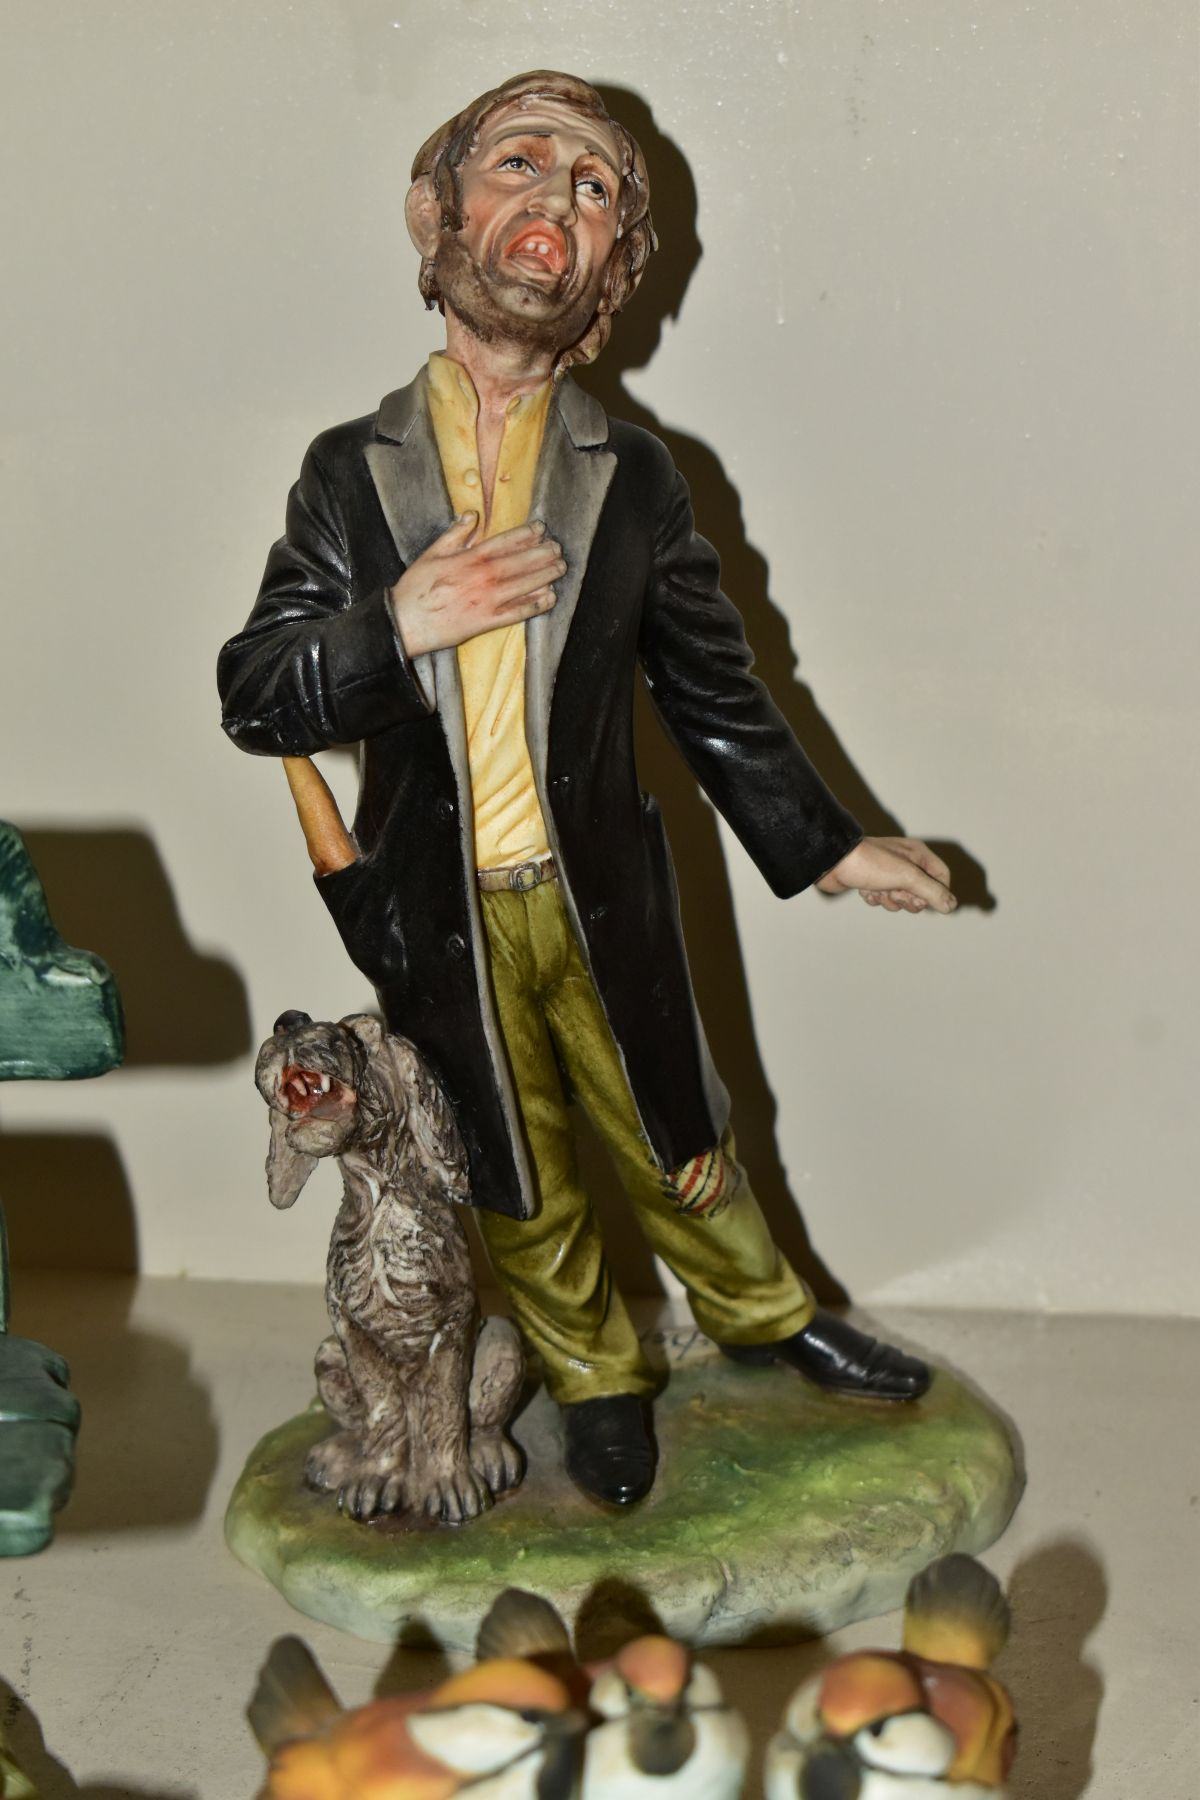 CAPODIMONTE to include a Tramp on a Bench Feeding a Squirrel, modelled by Bruno Merli, approximate - Image 6 of 7